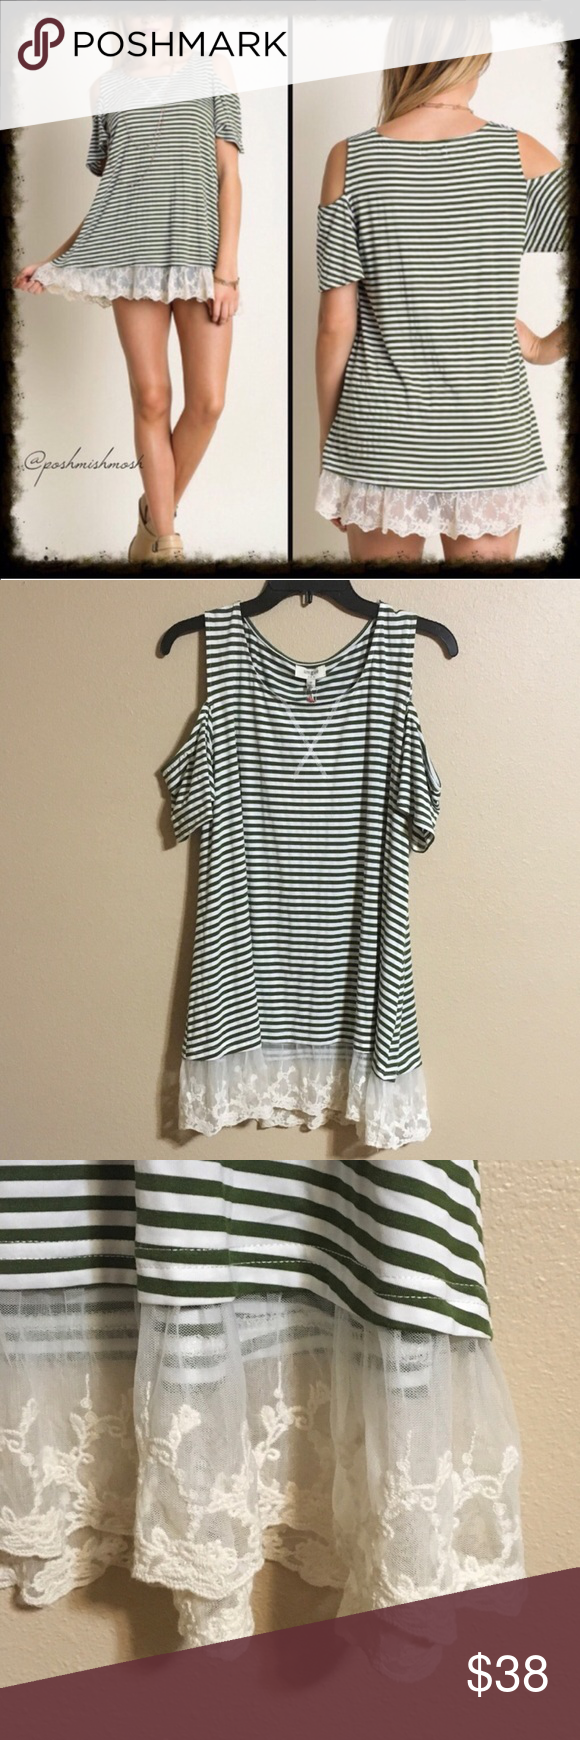 Olive/Cream Cold Shoulder Top w/Lace Olive/Cream Cold Shoulder Top w/Lace. This gorgeous striped cold shoulder top will become one of your favorites! Awesome for Coachella! Super comfortable material has some stretch to it. 65% cotton 35% polyester. 💋 Tops